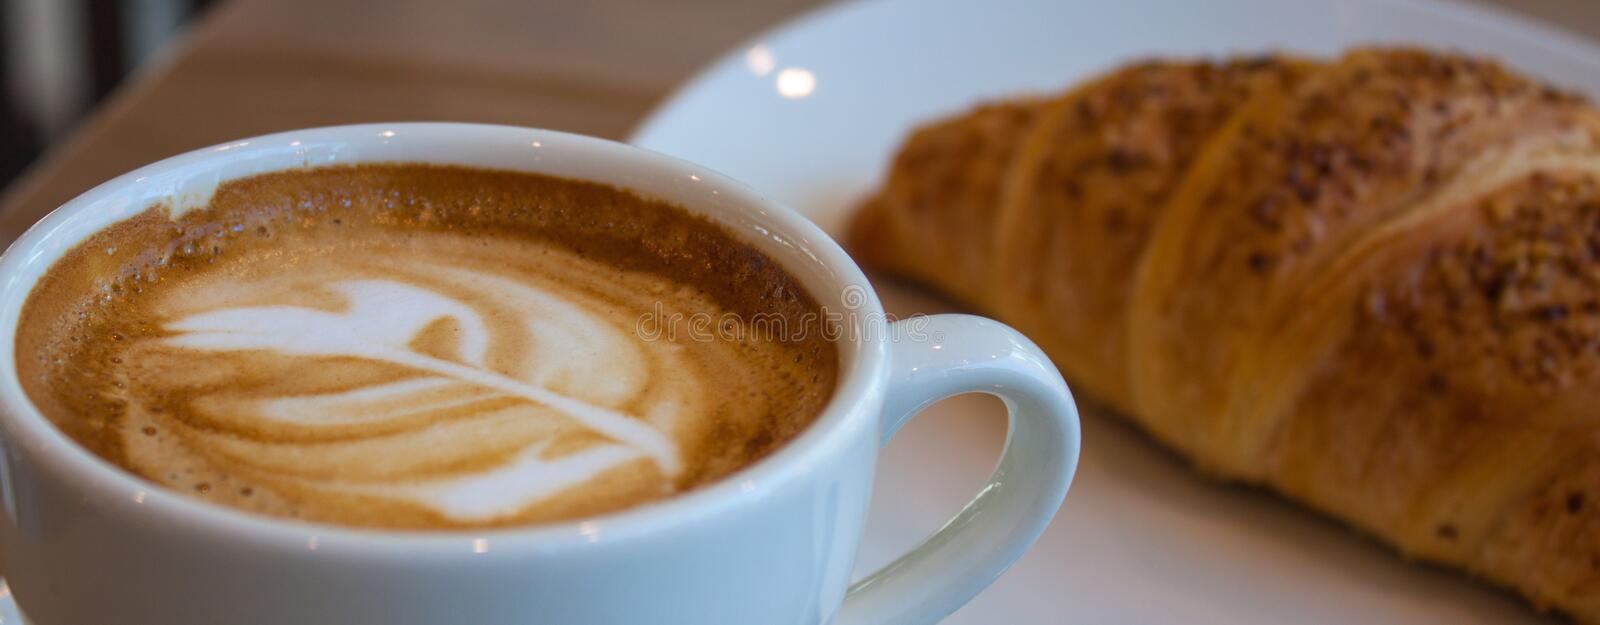 Cappuccino and croissant stock photo